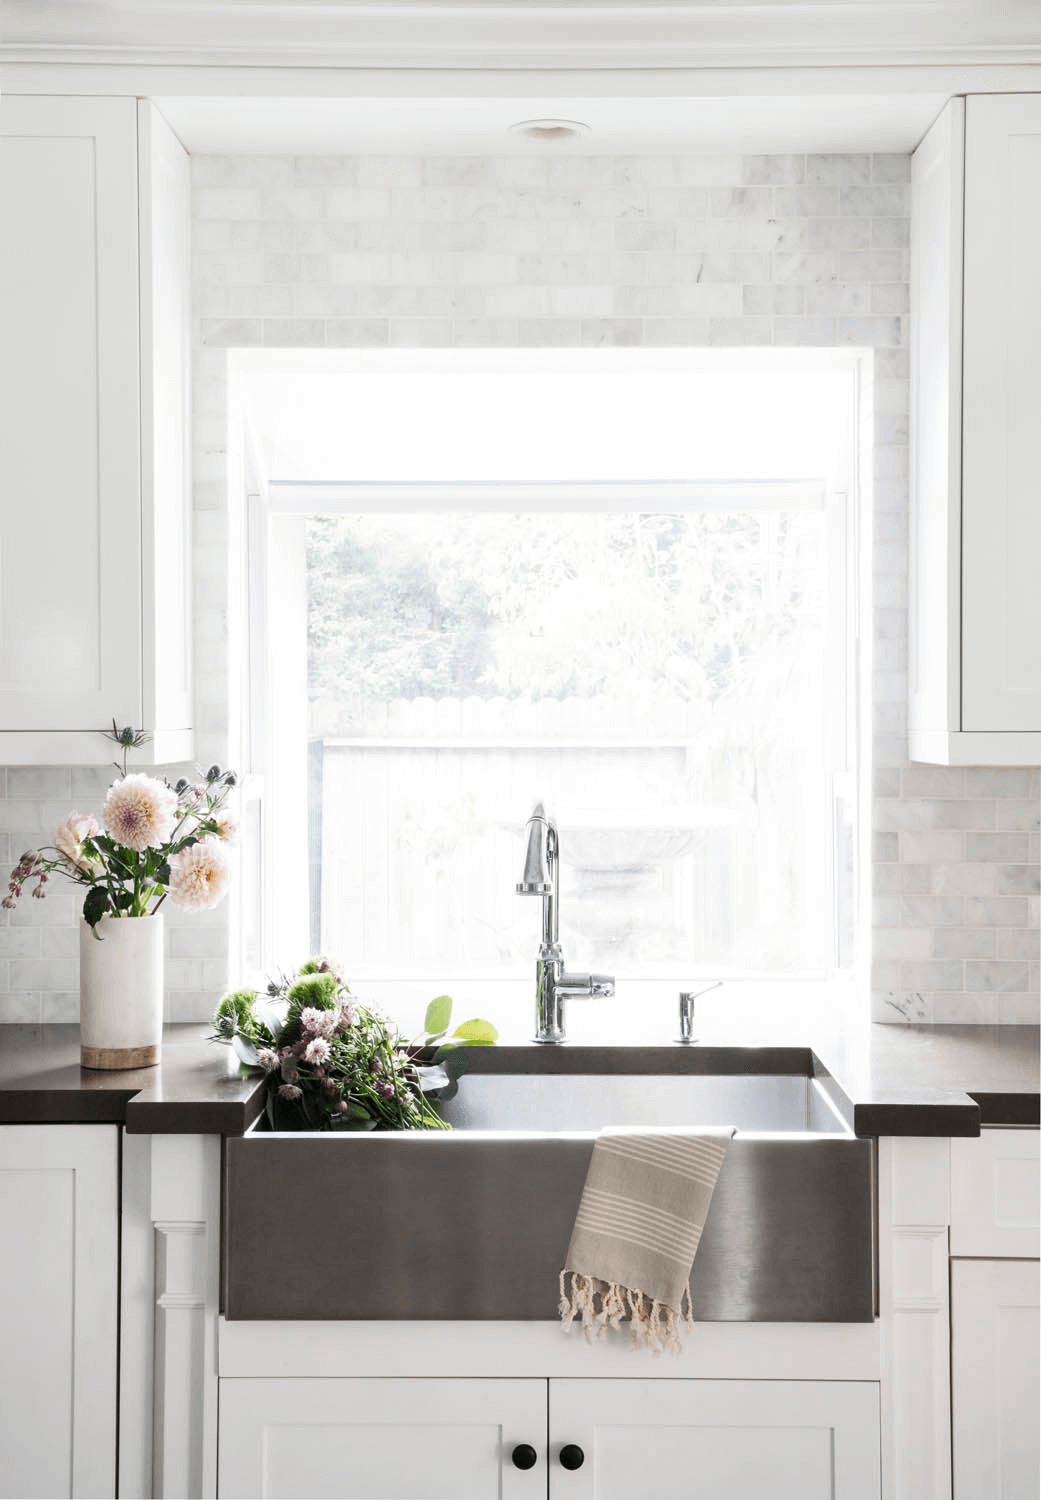 this is an stainless steel apron sink in a farmhouse kitchen